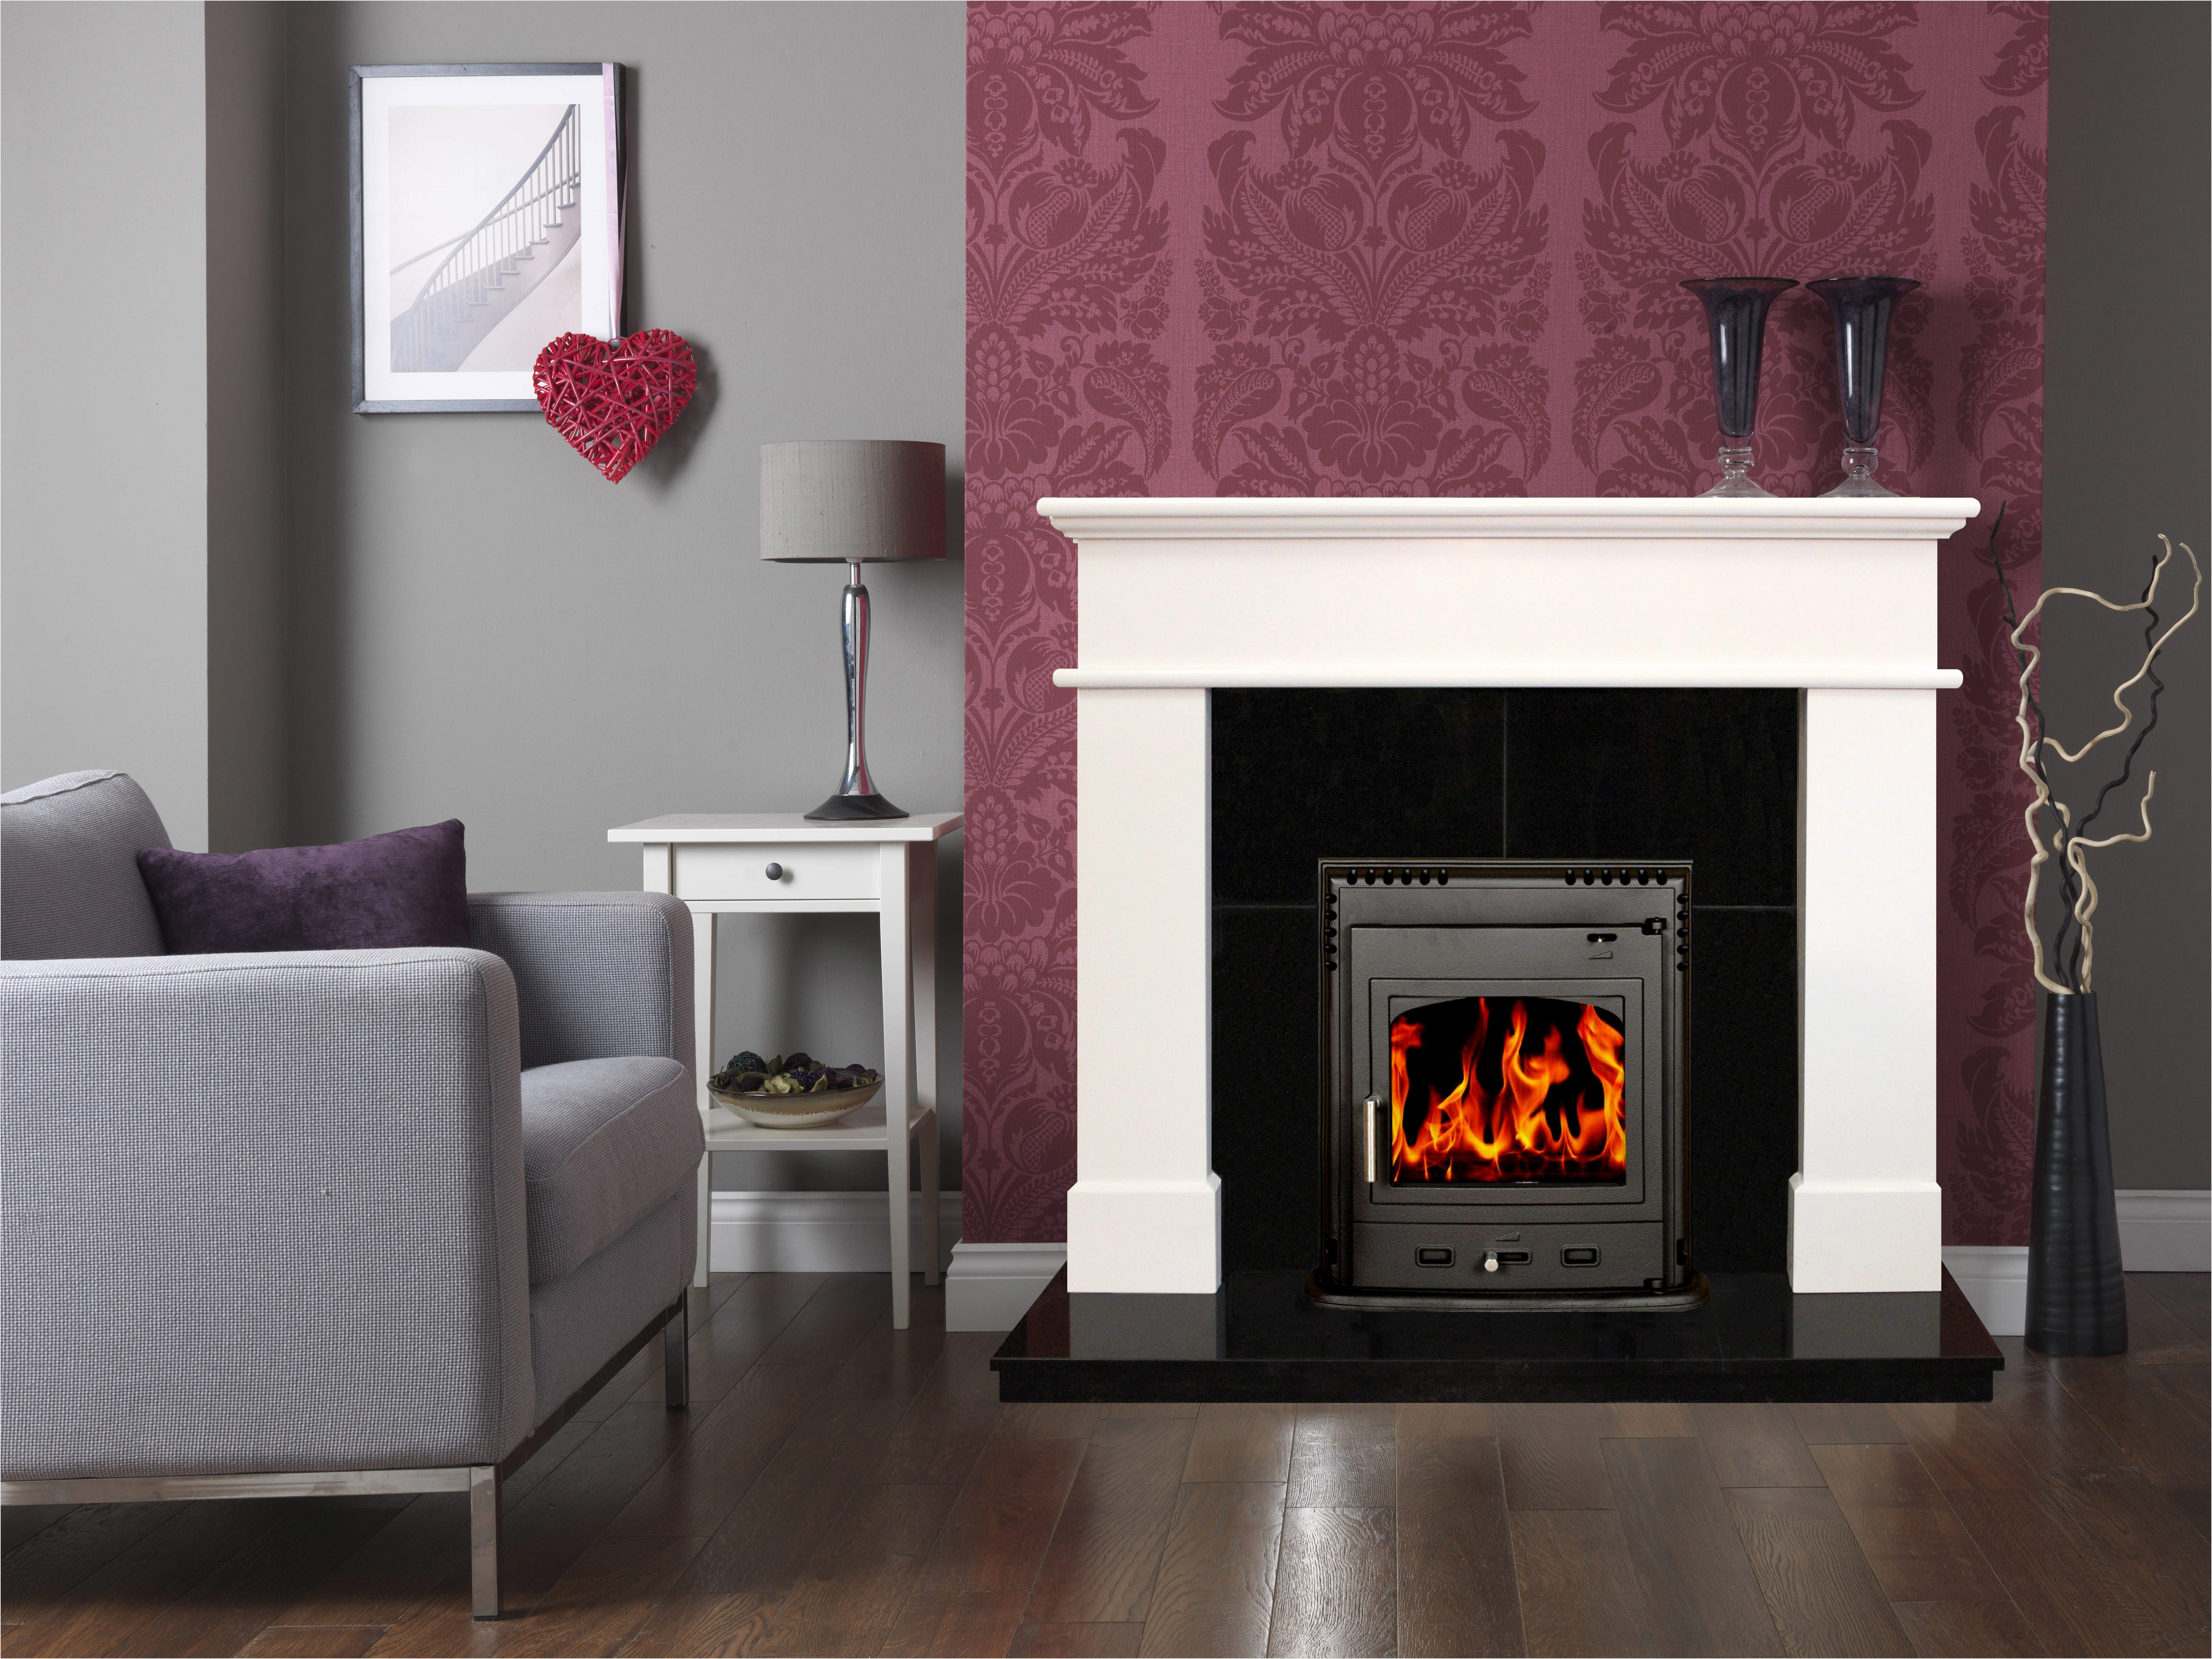 Adding A Fireplace Adding A Fireplace To A House Artificial Fireplace Best Fireplace Insert Best Gas Fireplace Brick